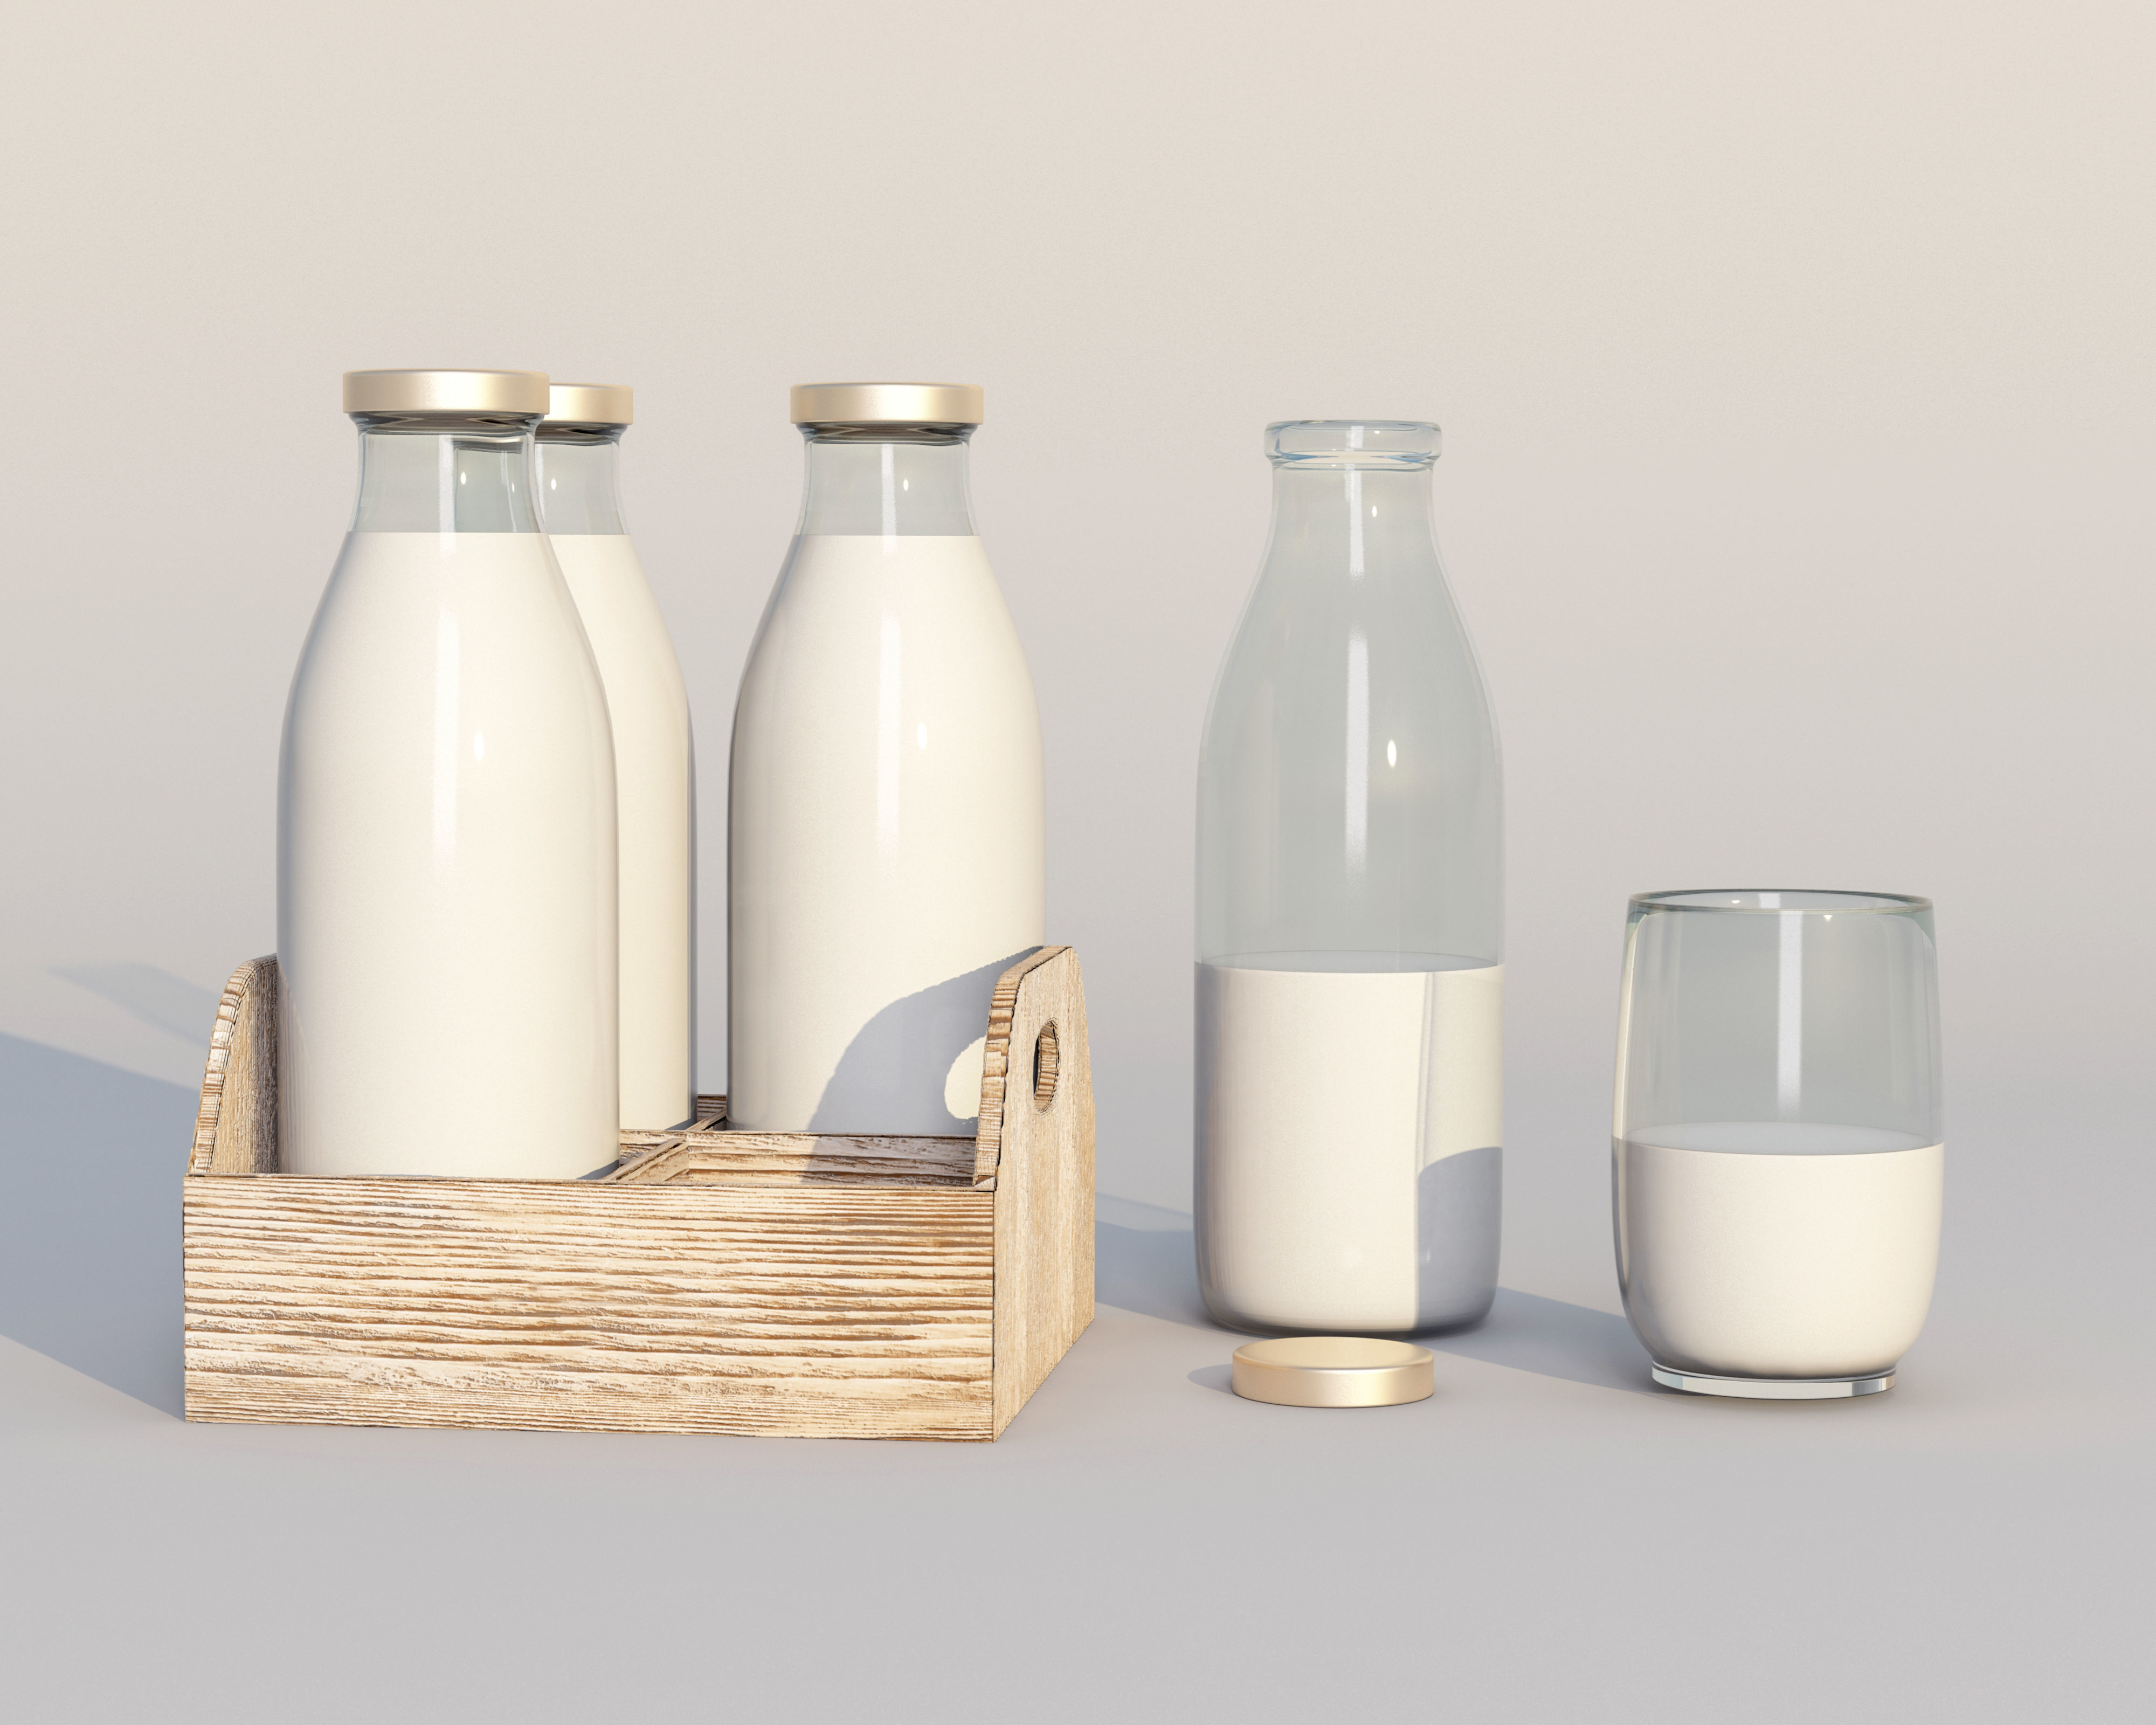 Retro glass milk bottles with wood box and glass